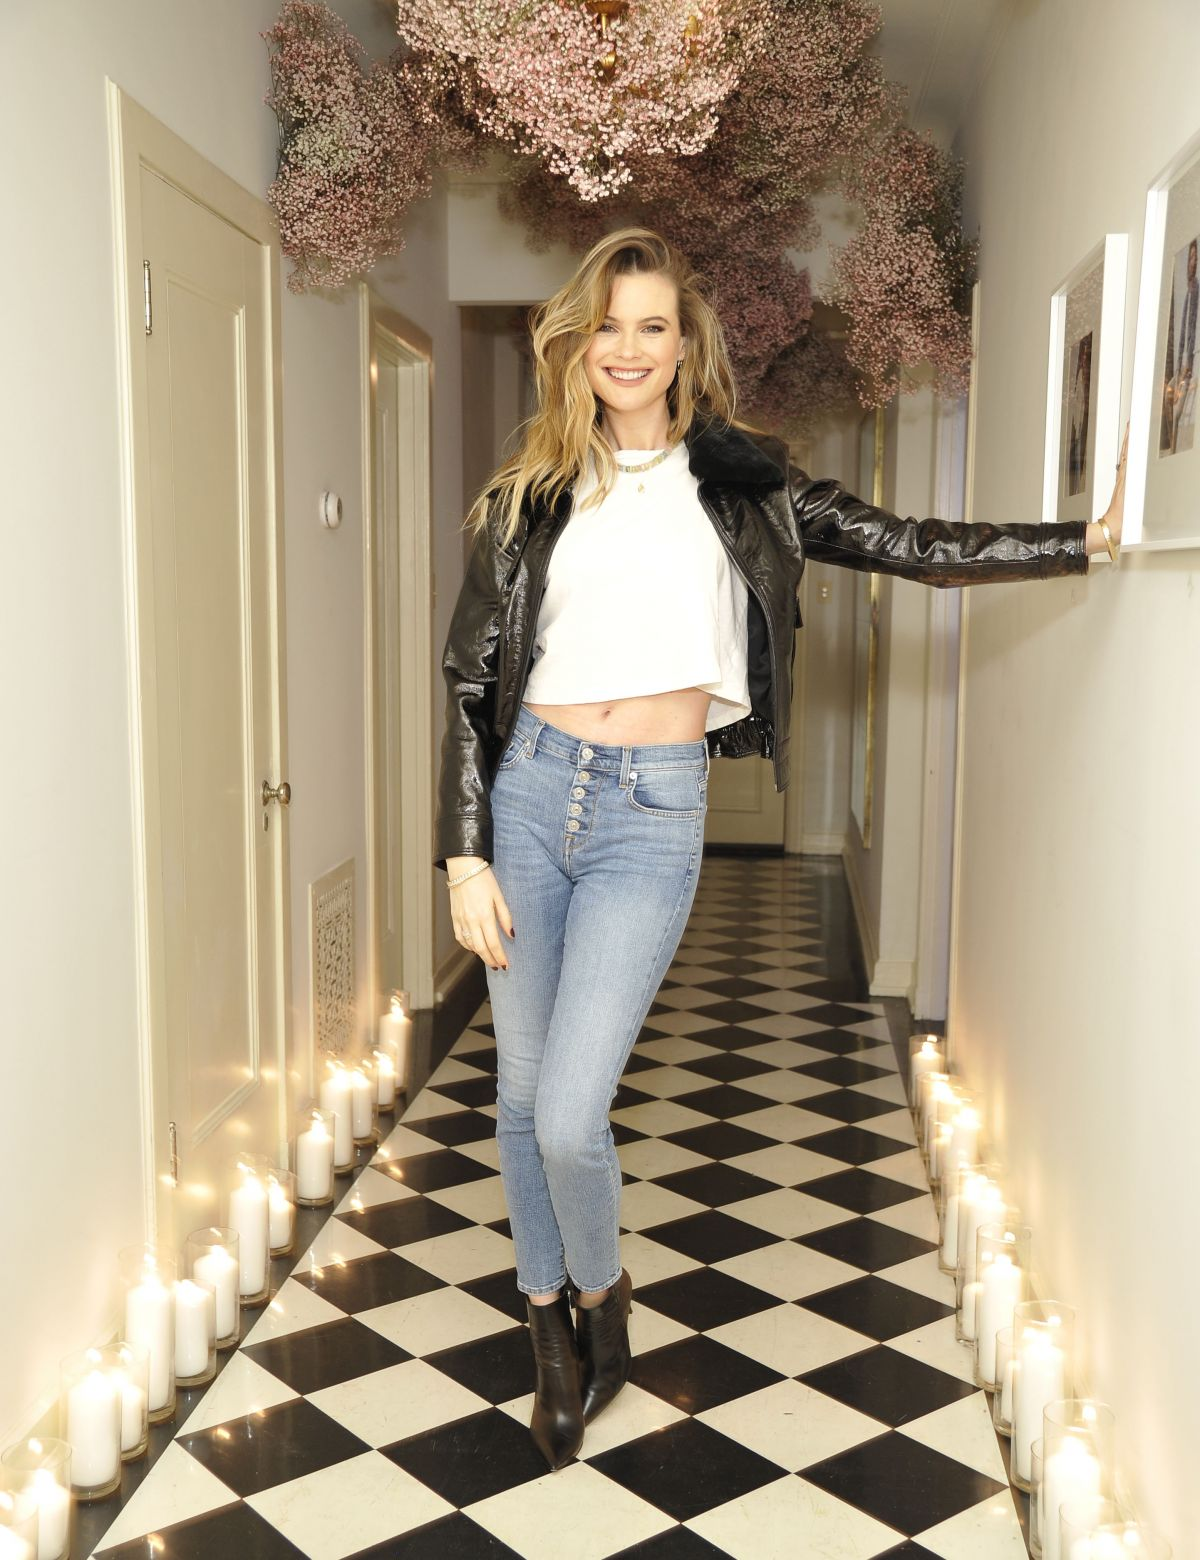 Behati Prinsloo At 7 For All Mankind SS19 Campaign Launch Party - 03/07/2019